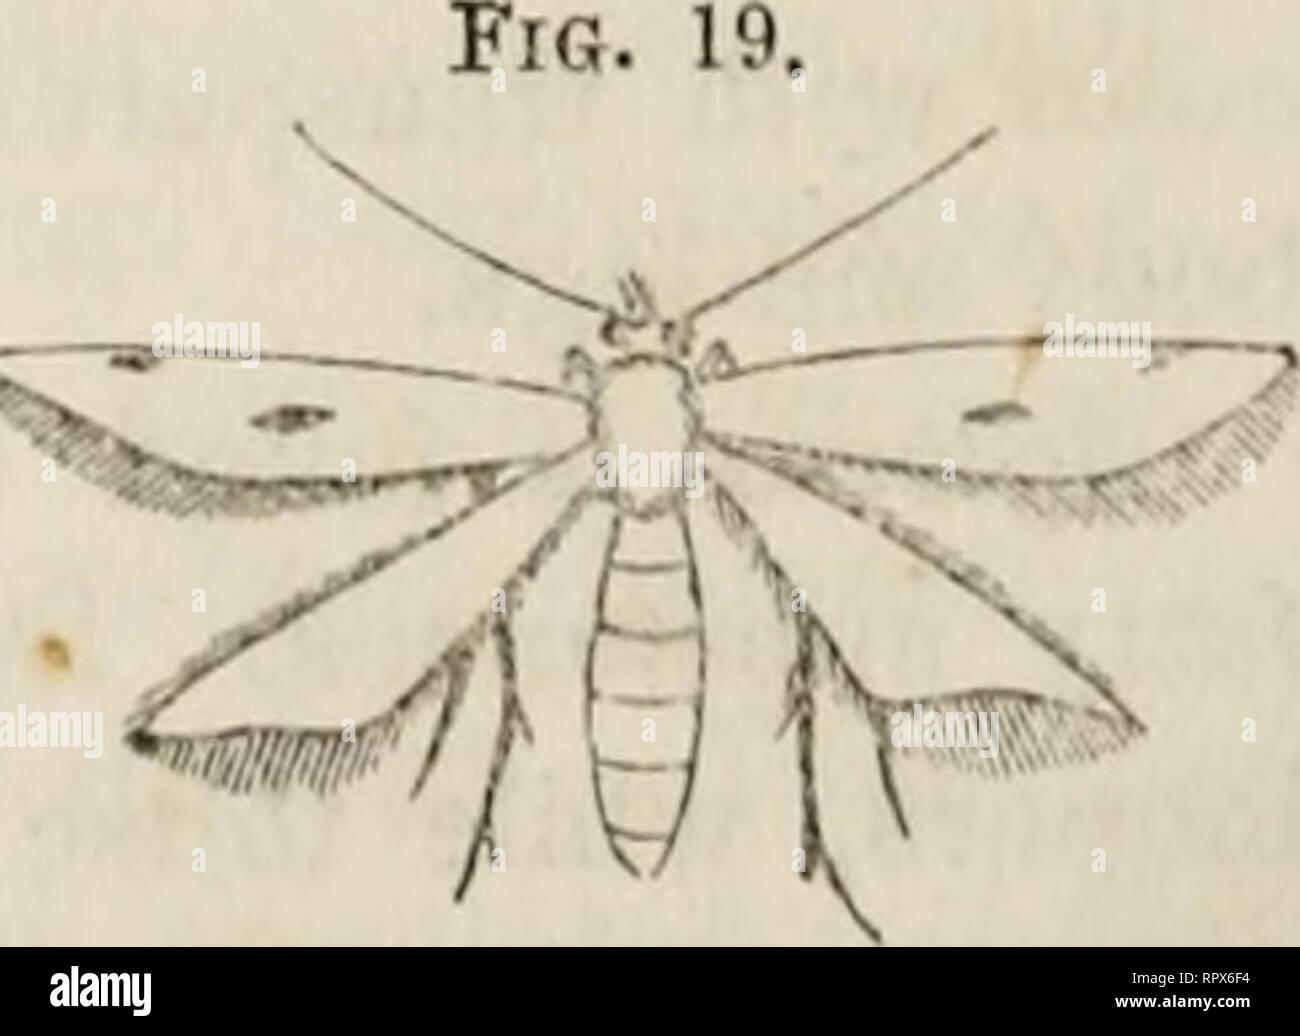 . Agriculture of Maine. ... annual report of the Secretary of the Maine Board of Agriculture. Agriculture -- Maine. 174 BOARD OF AGRICULTURE. grass lanes, or by rivers and pools in summer. Some of the spe- cies are day fliers. Tortricidce. (Leaf-rollers.) These are small, broad-winged moths, which at rest fold their wings, roof-like, over their bodies, fiq. is. in the form of a triangle, (as in Pig. 18.) They are abund- ant in June and July, in low bushes, herbage, or on leaves of trees, where they can be swept by the net. The larvae are rather thick greenish caterpillars, which roll up leaves - Stock Image